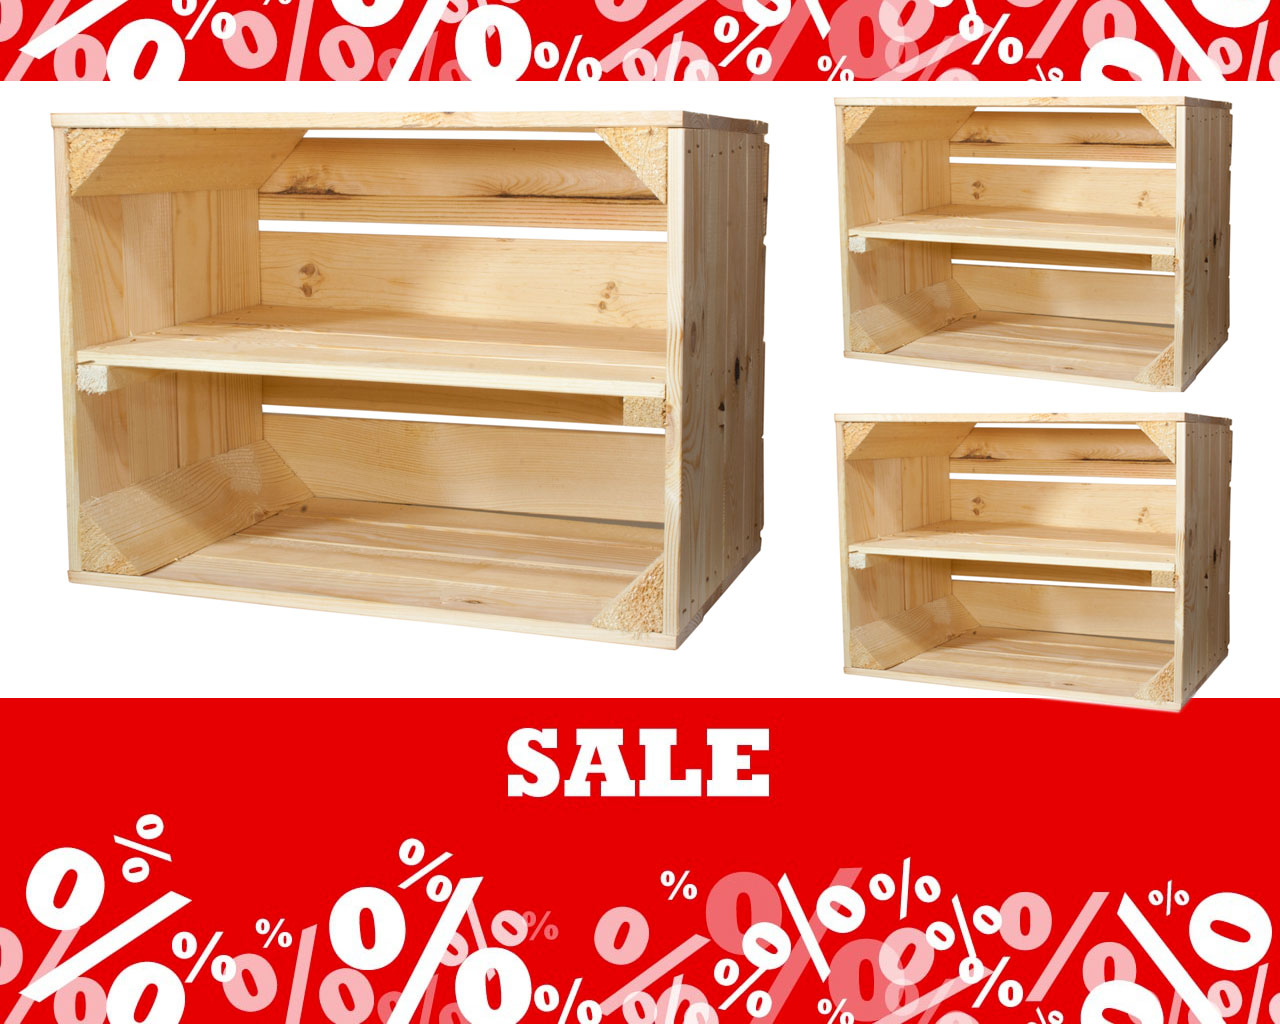 sale 3er set kleine holzkiste f r schuh und. Black Bedroom Furniture Sets. Home Design Ideas